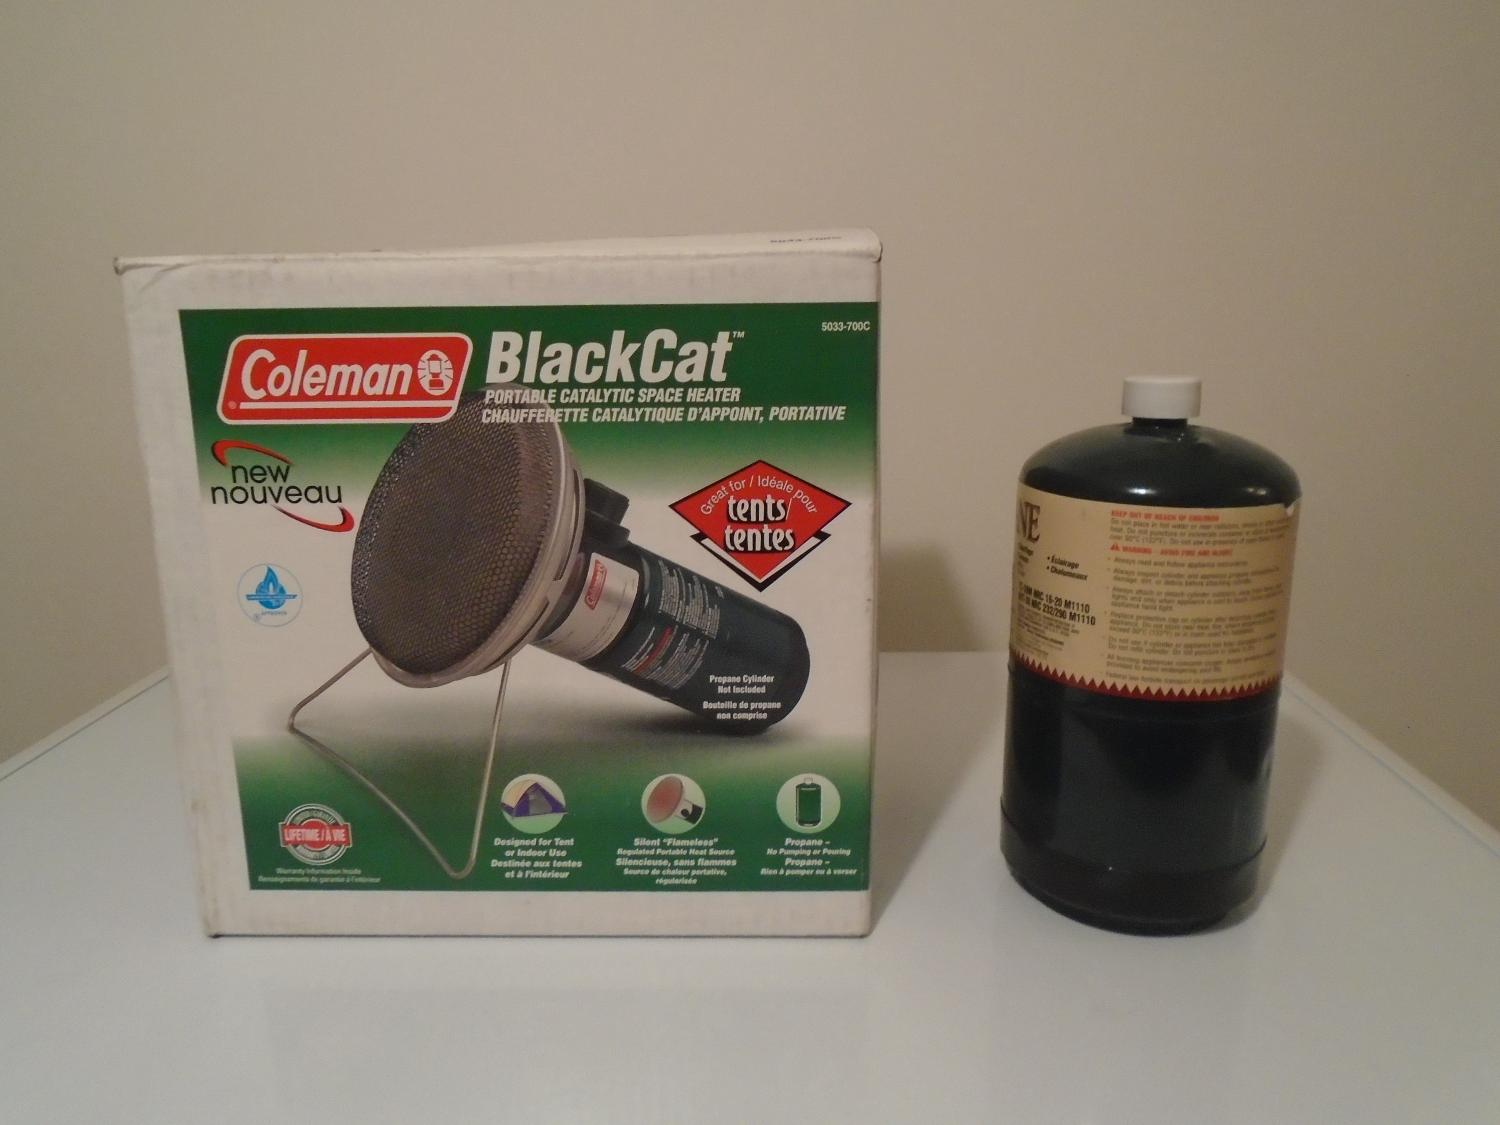 Find More Coleman Blackcat Portable Catalytic Space Heater